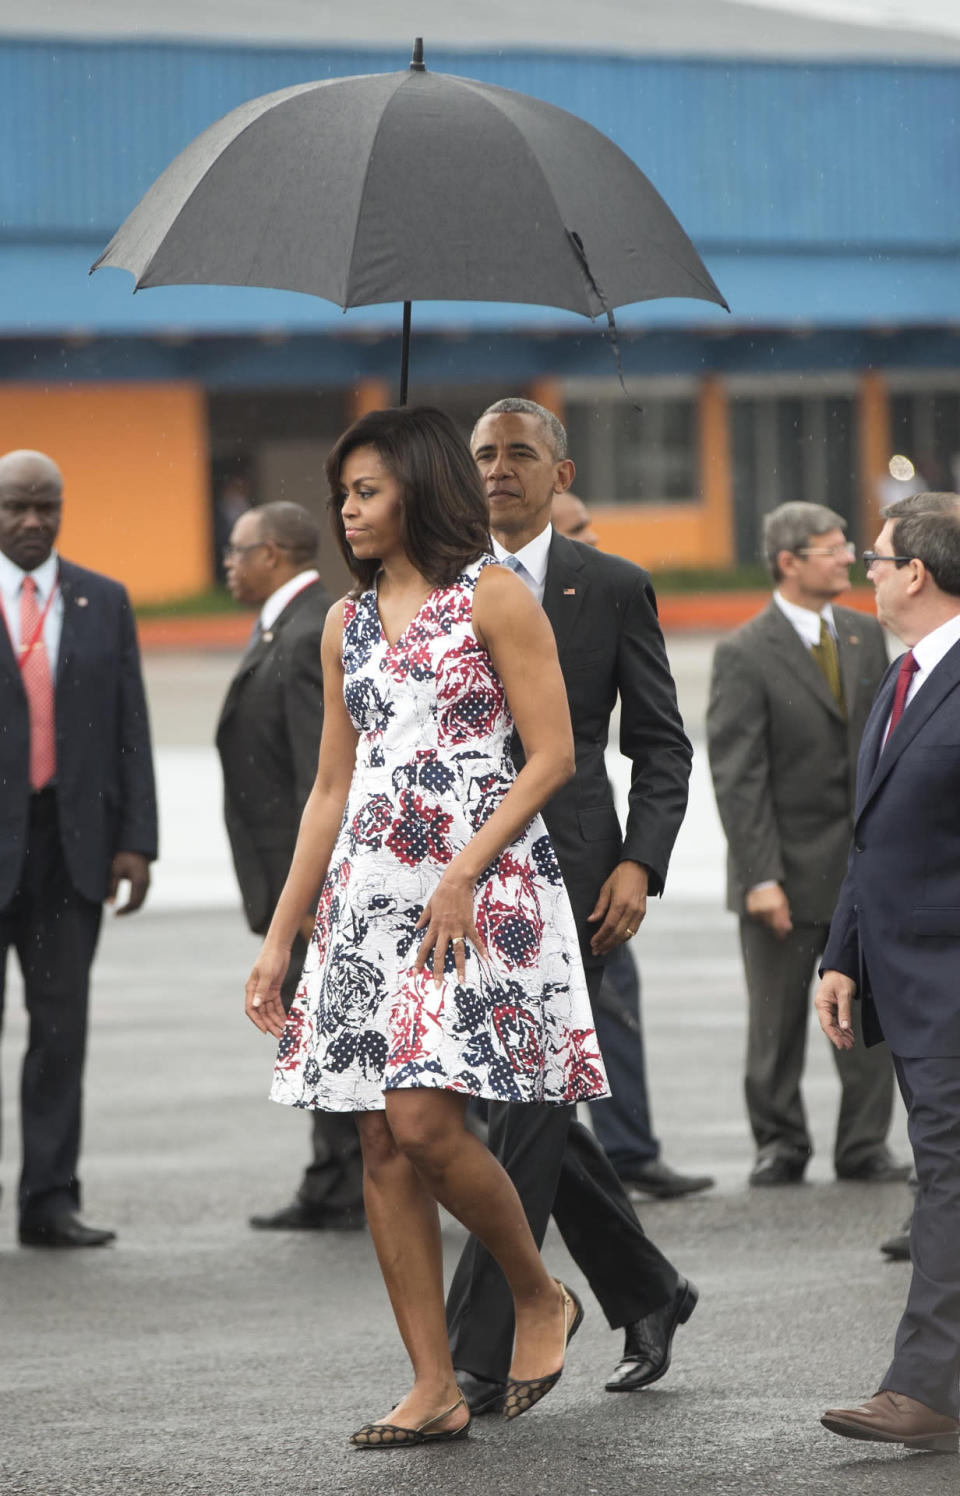 <p>For the first time in nine decades, an American president and his family are visiting Cuba. The Obamas probably expected to be greeted with sunshine, so they dressed for the tropical climate. Instead, it was pouring rain and the first lady's floral dress from Carolina Herrera wasn't weather appropriate. Luckily, she had her chivalrous husband to protect her from the storm. <i>Photo: AP</i></p>